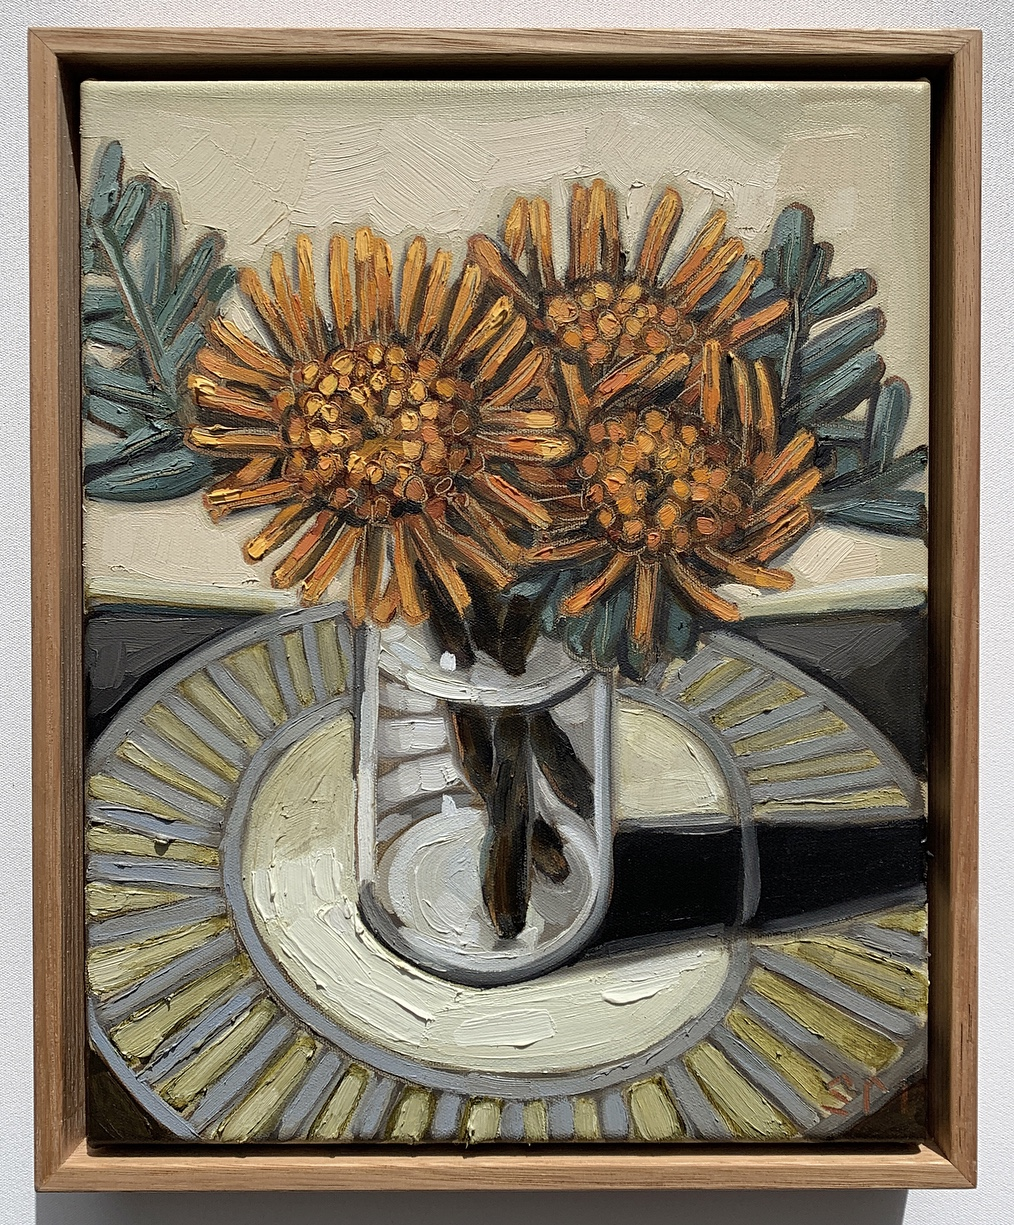 sam michelle 'pincushions & grey vase' 3